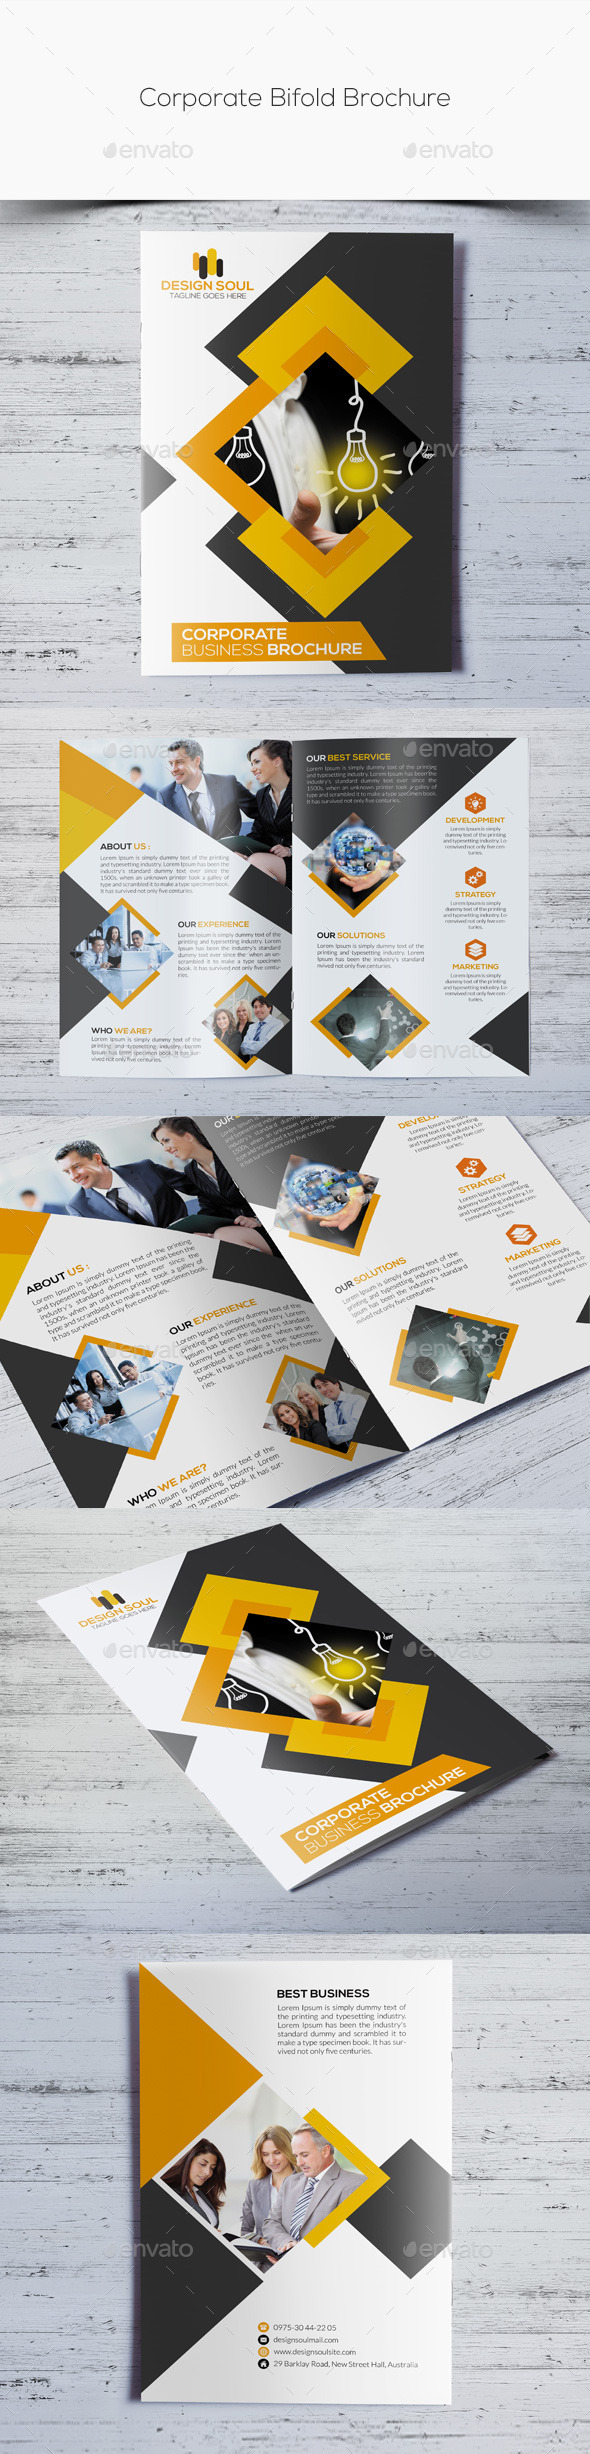 GraphicRiver Corporate Bifold Brochure 10814352